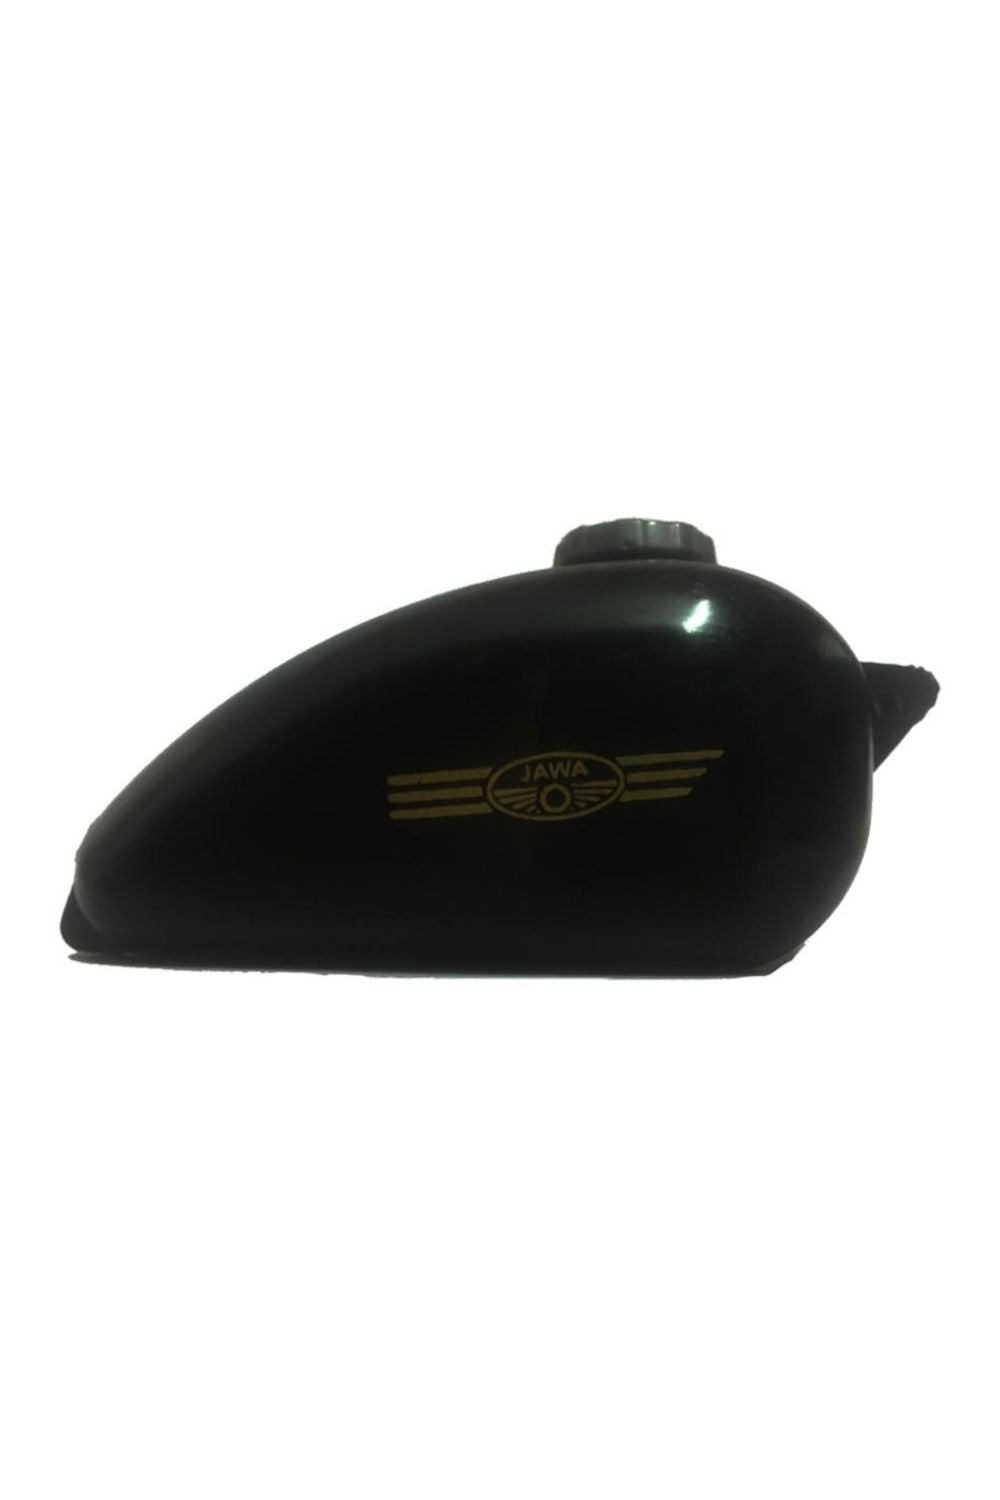 Jawa Motorcycle Petrol Tank Collectable - ChrisCross.in